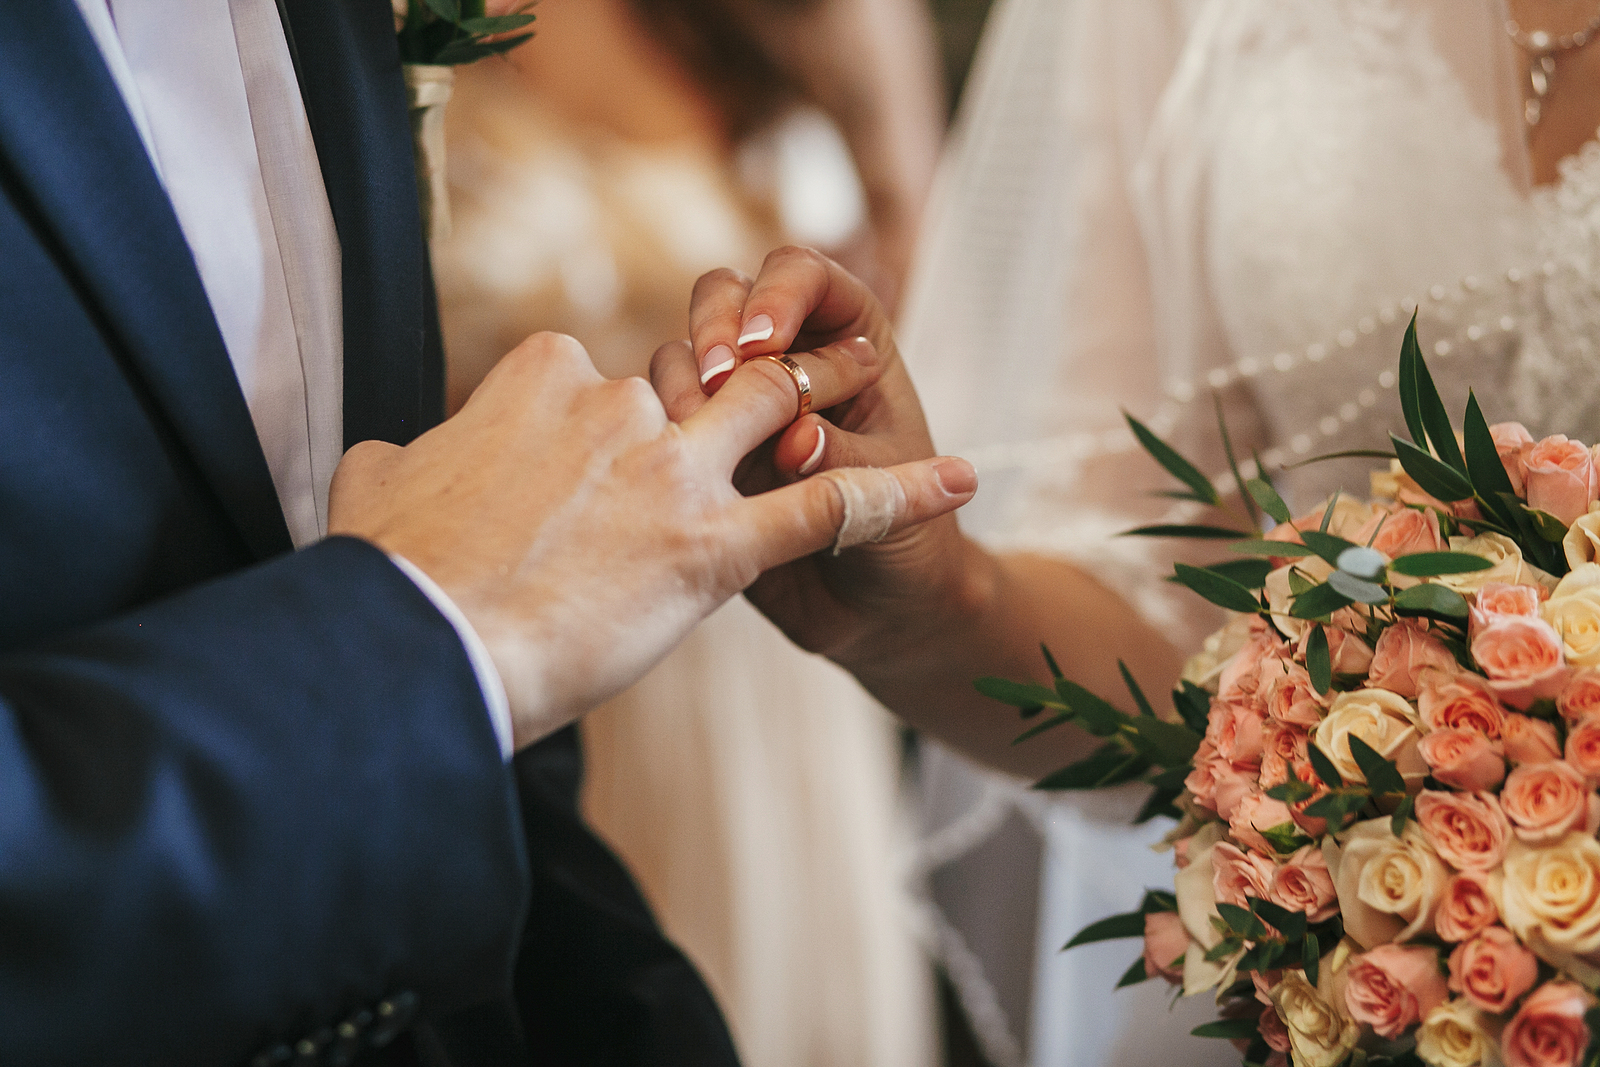 Bride And Groom Hands Exchanging Wedding Rings